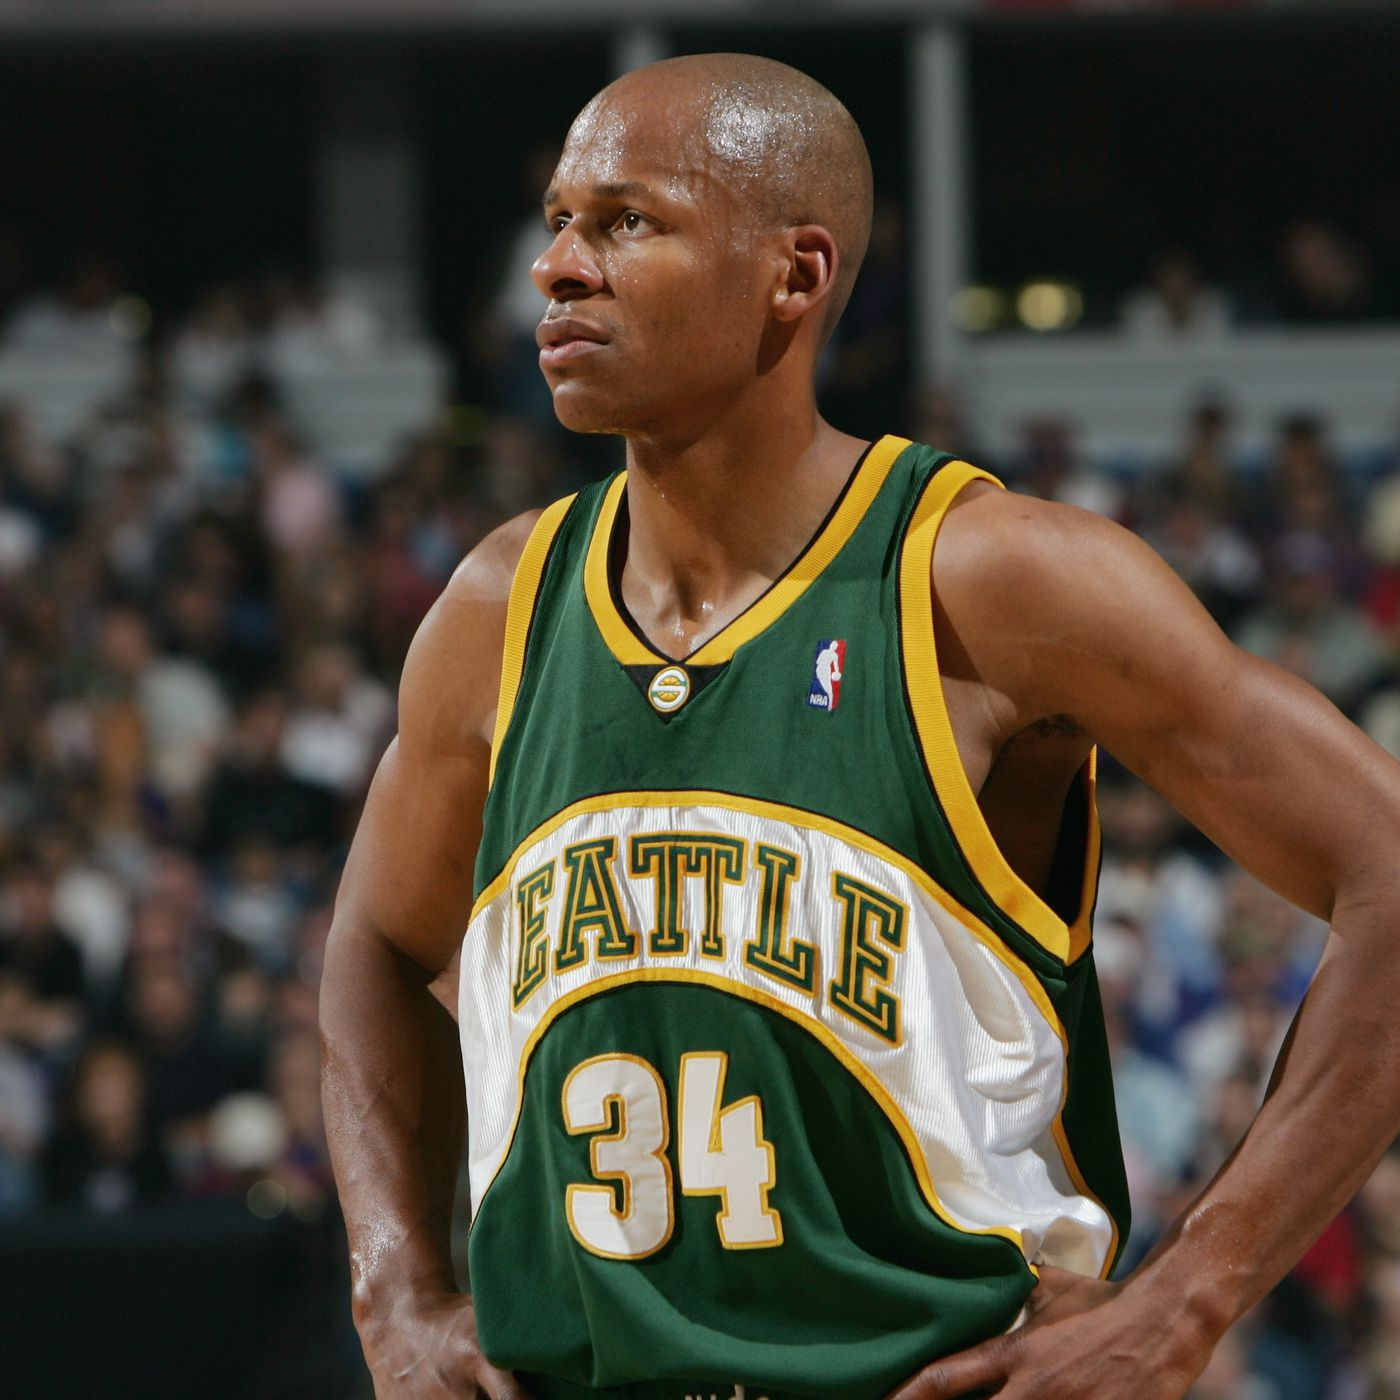 Ray Allen named Hall of Fame finalist - Sonics Rising